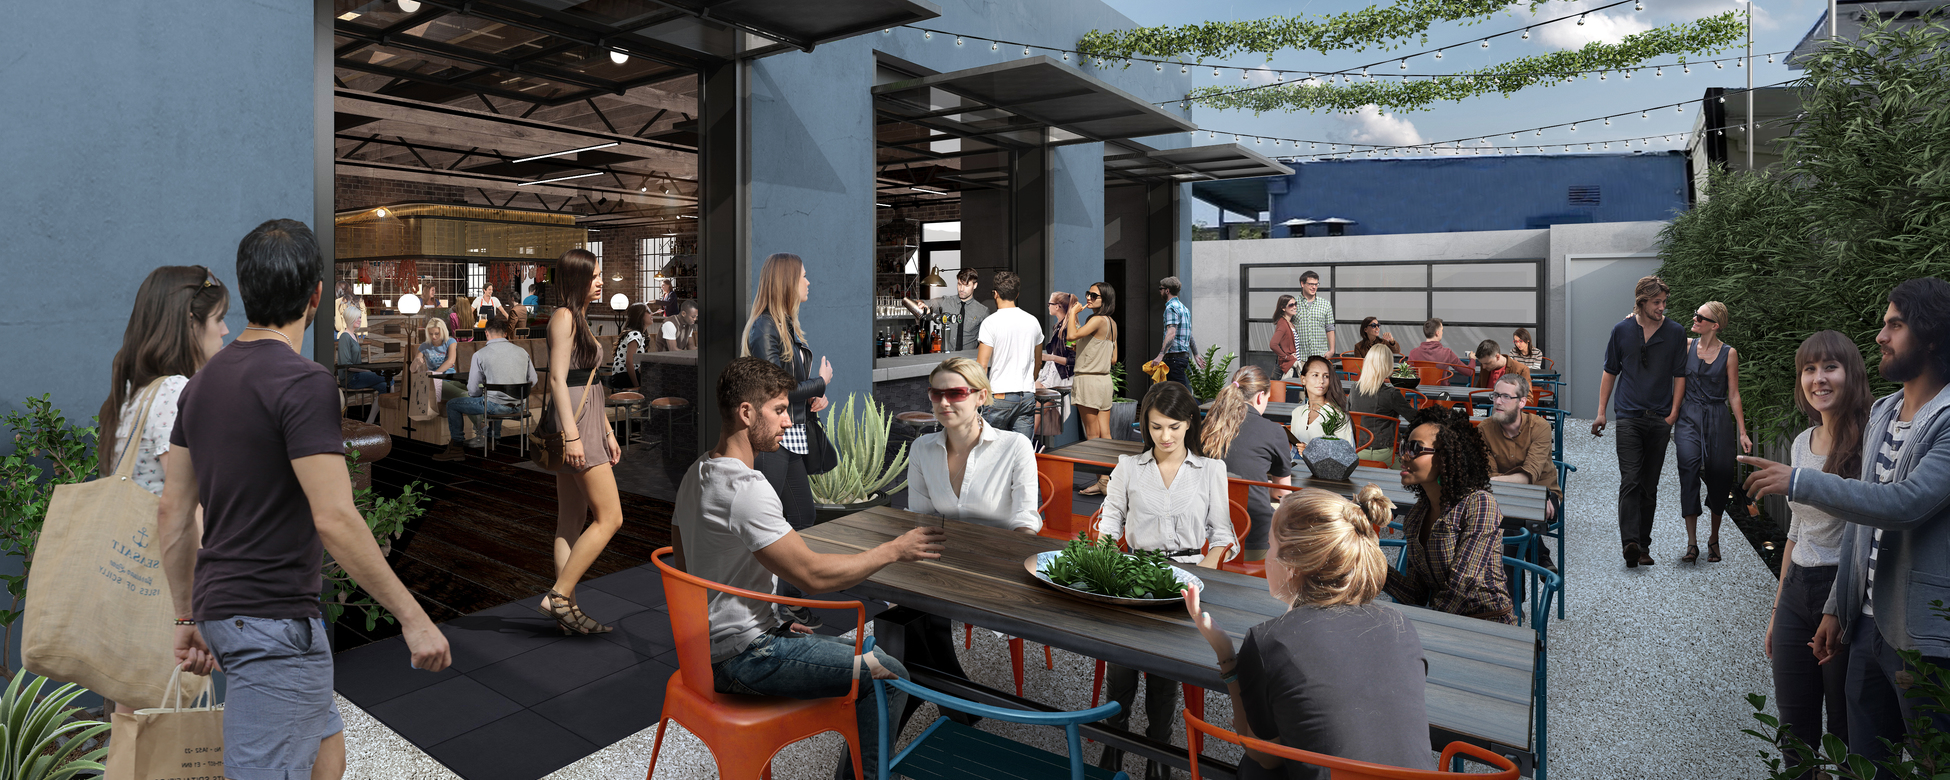 Two LA Cocktail Veterans Will Open Bar Inside Culver City's Big New Food Hall